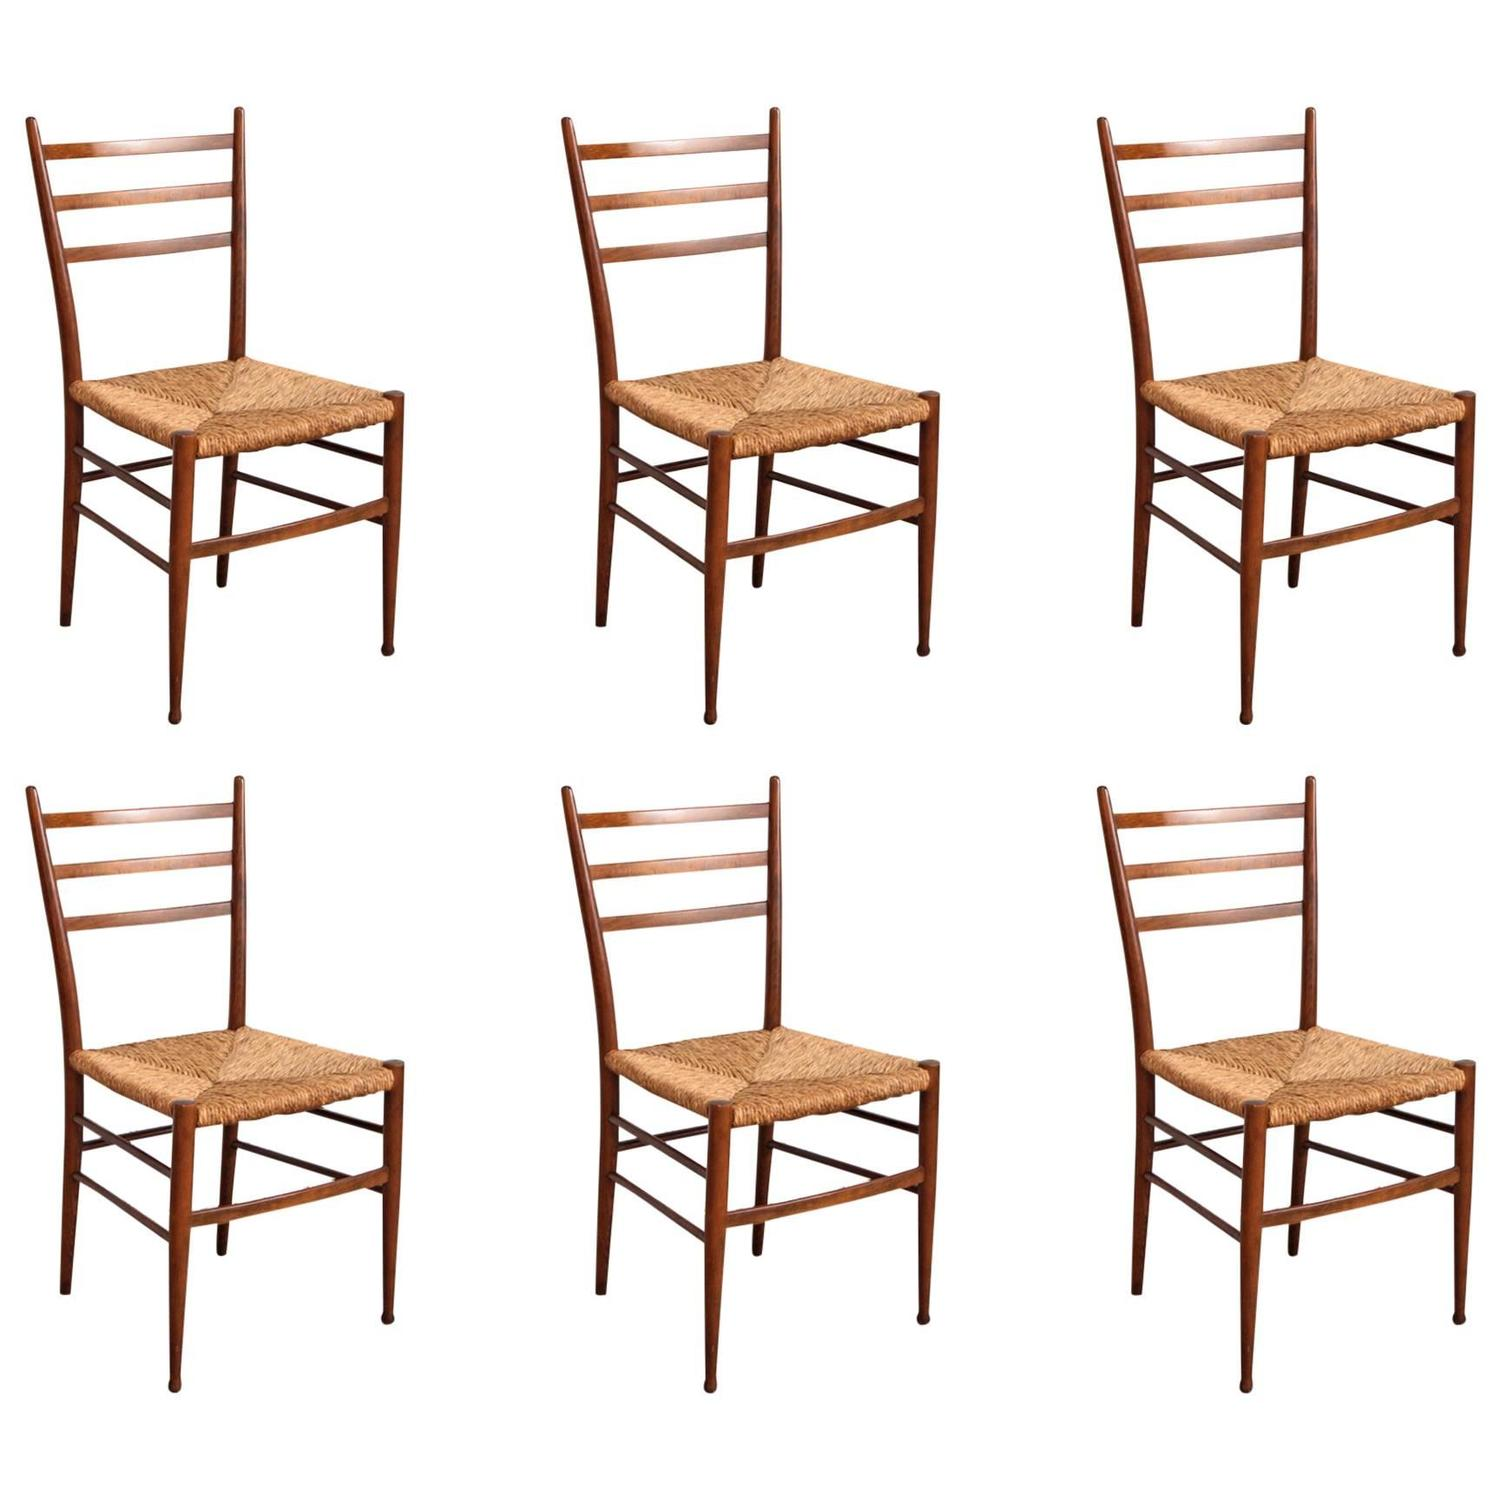 Six italian modern dining chairs gio ponti style at 1stdibs for Italian dining chairs modern